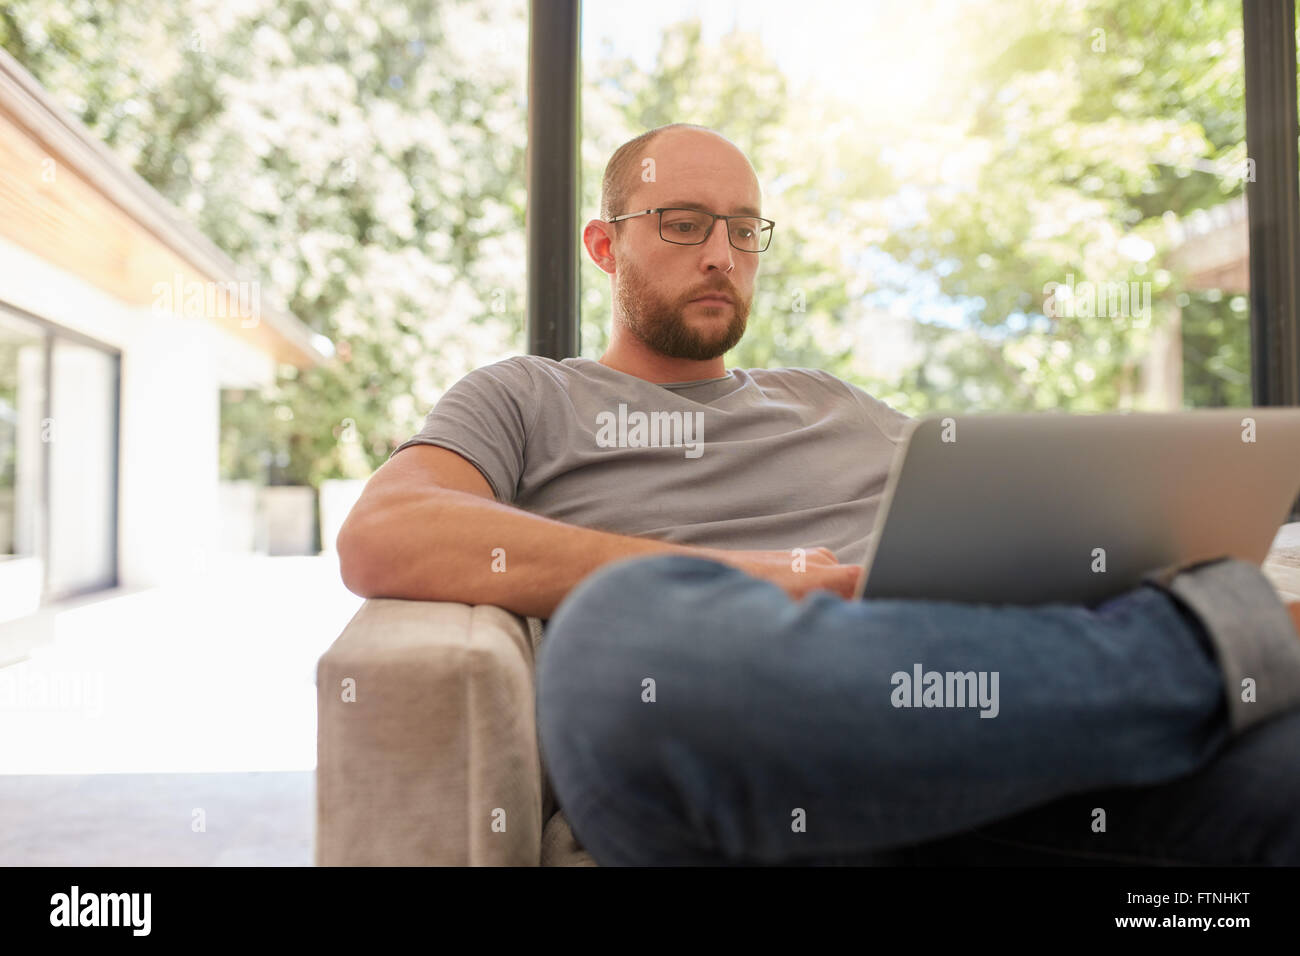 Portrait of mature caucasian man sitting on a sofa and working on laptop. Man surfing internet on laptop computer. - Stock Image